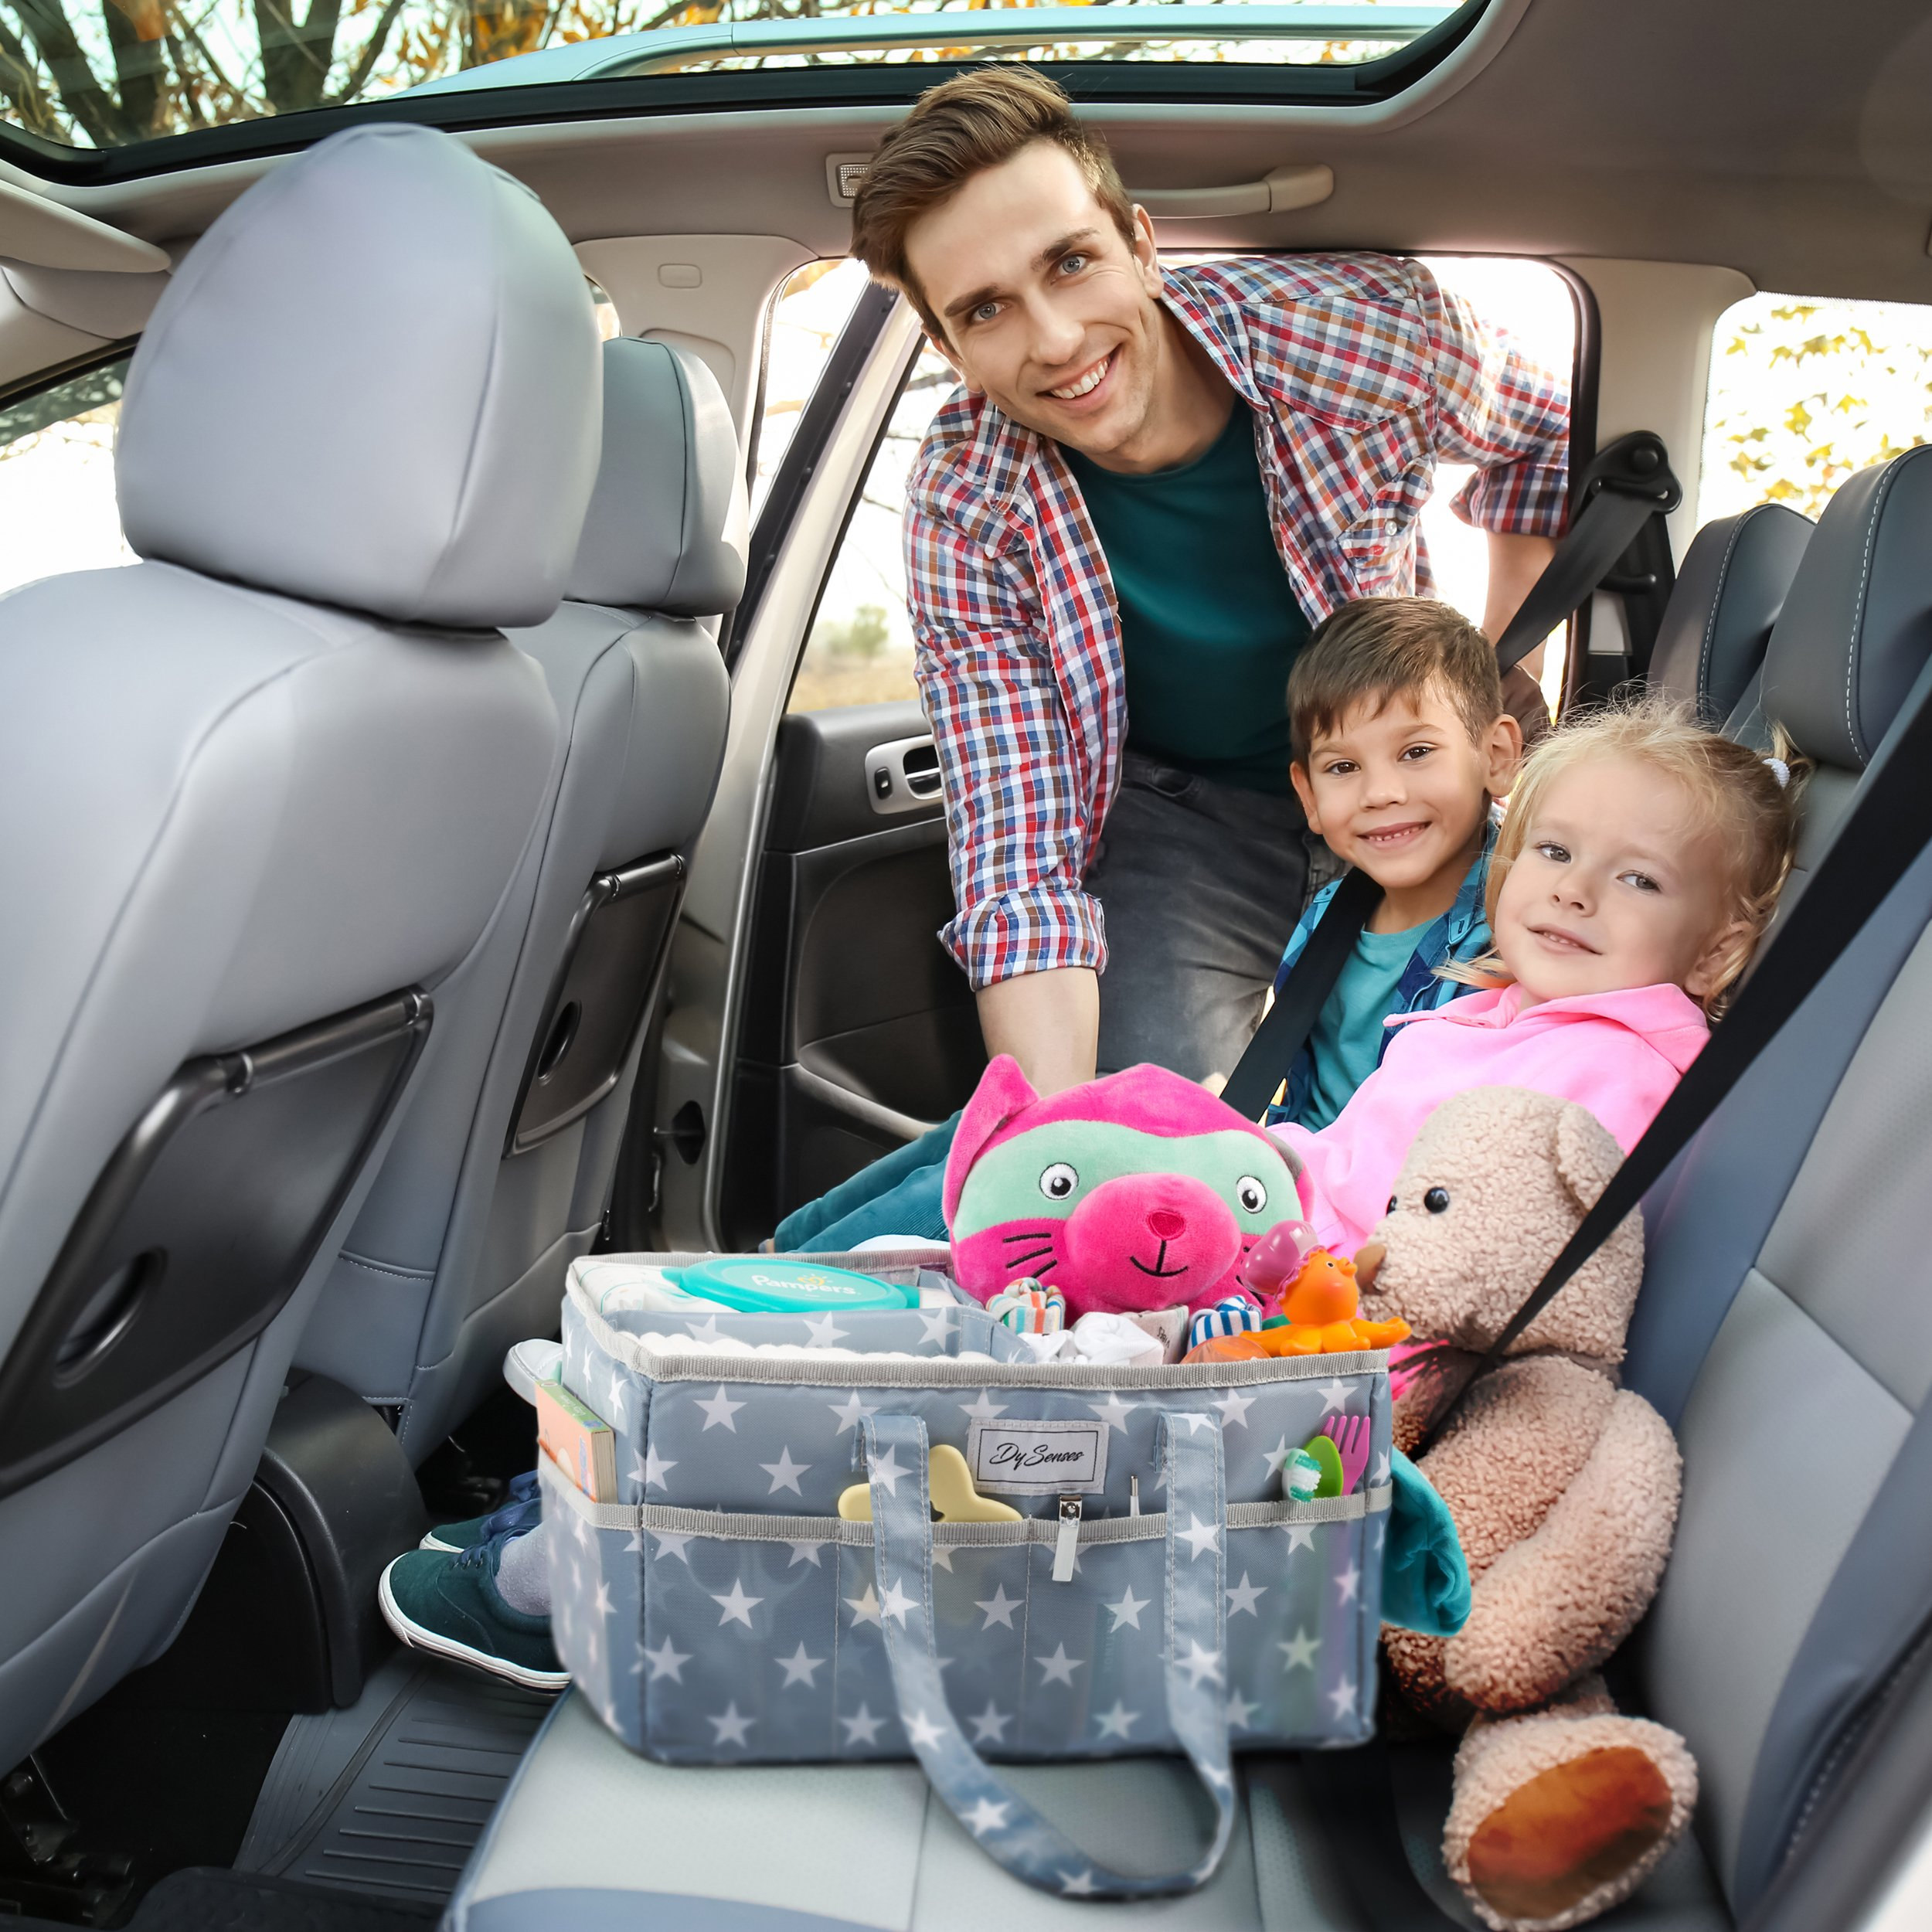 Diaper Storage Caddy Nursery Organizer | Grey Baby Diaper Caddy & Portable Changing Pad | Suitable for Car Travel Picnic & Nursing Station by DySenses (Image #3)